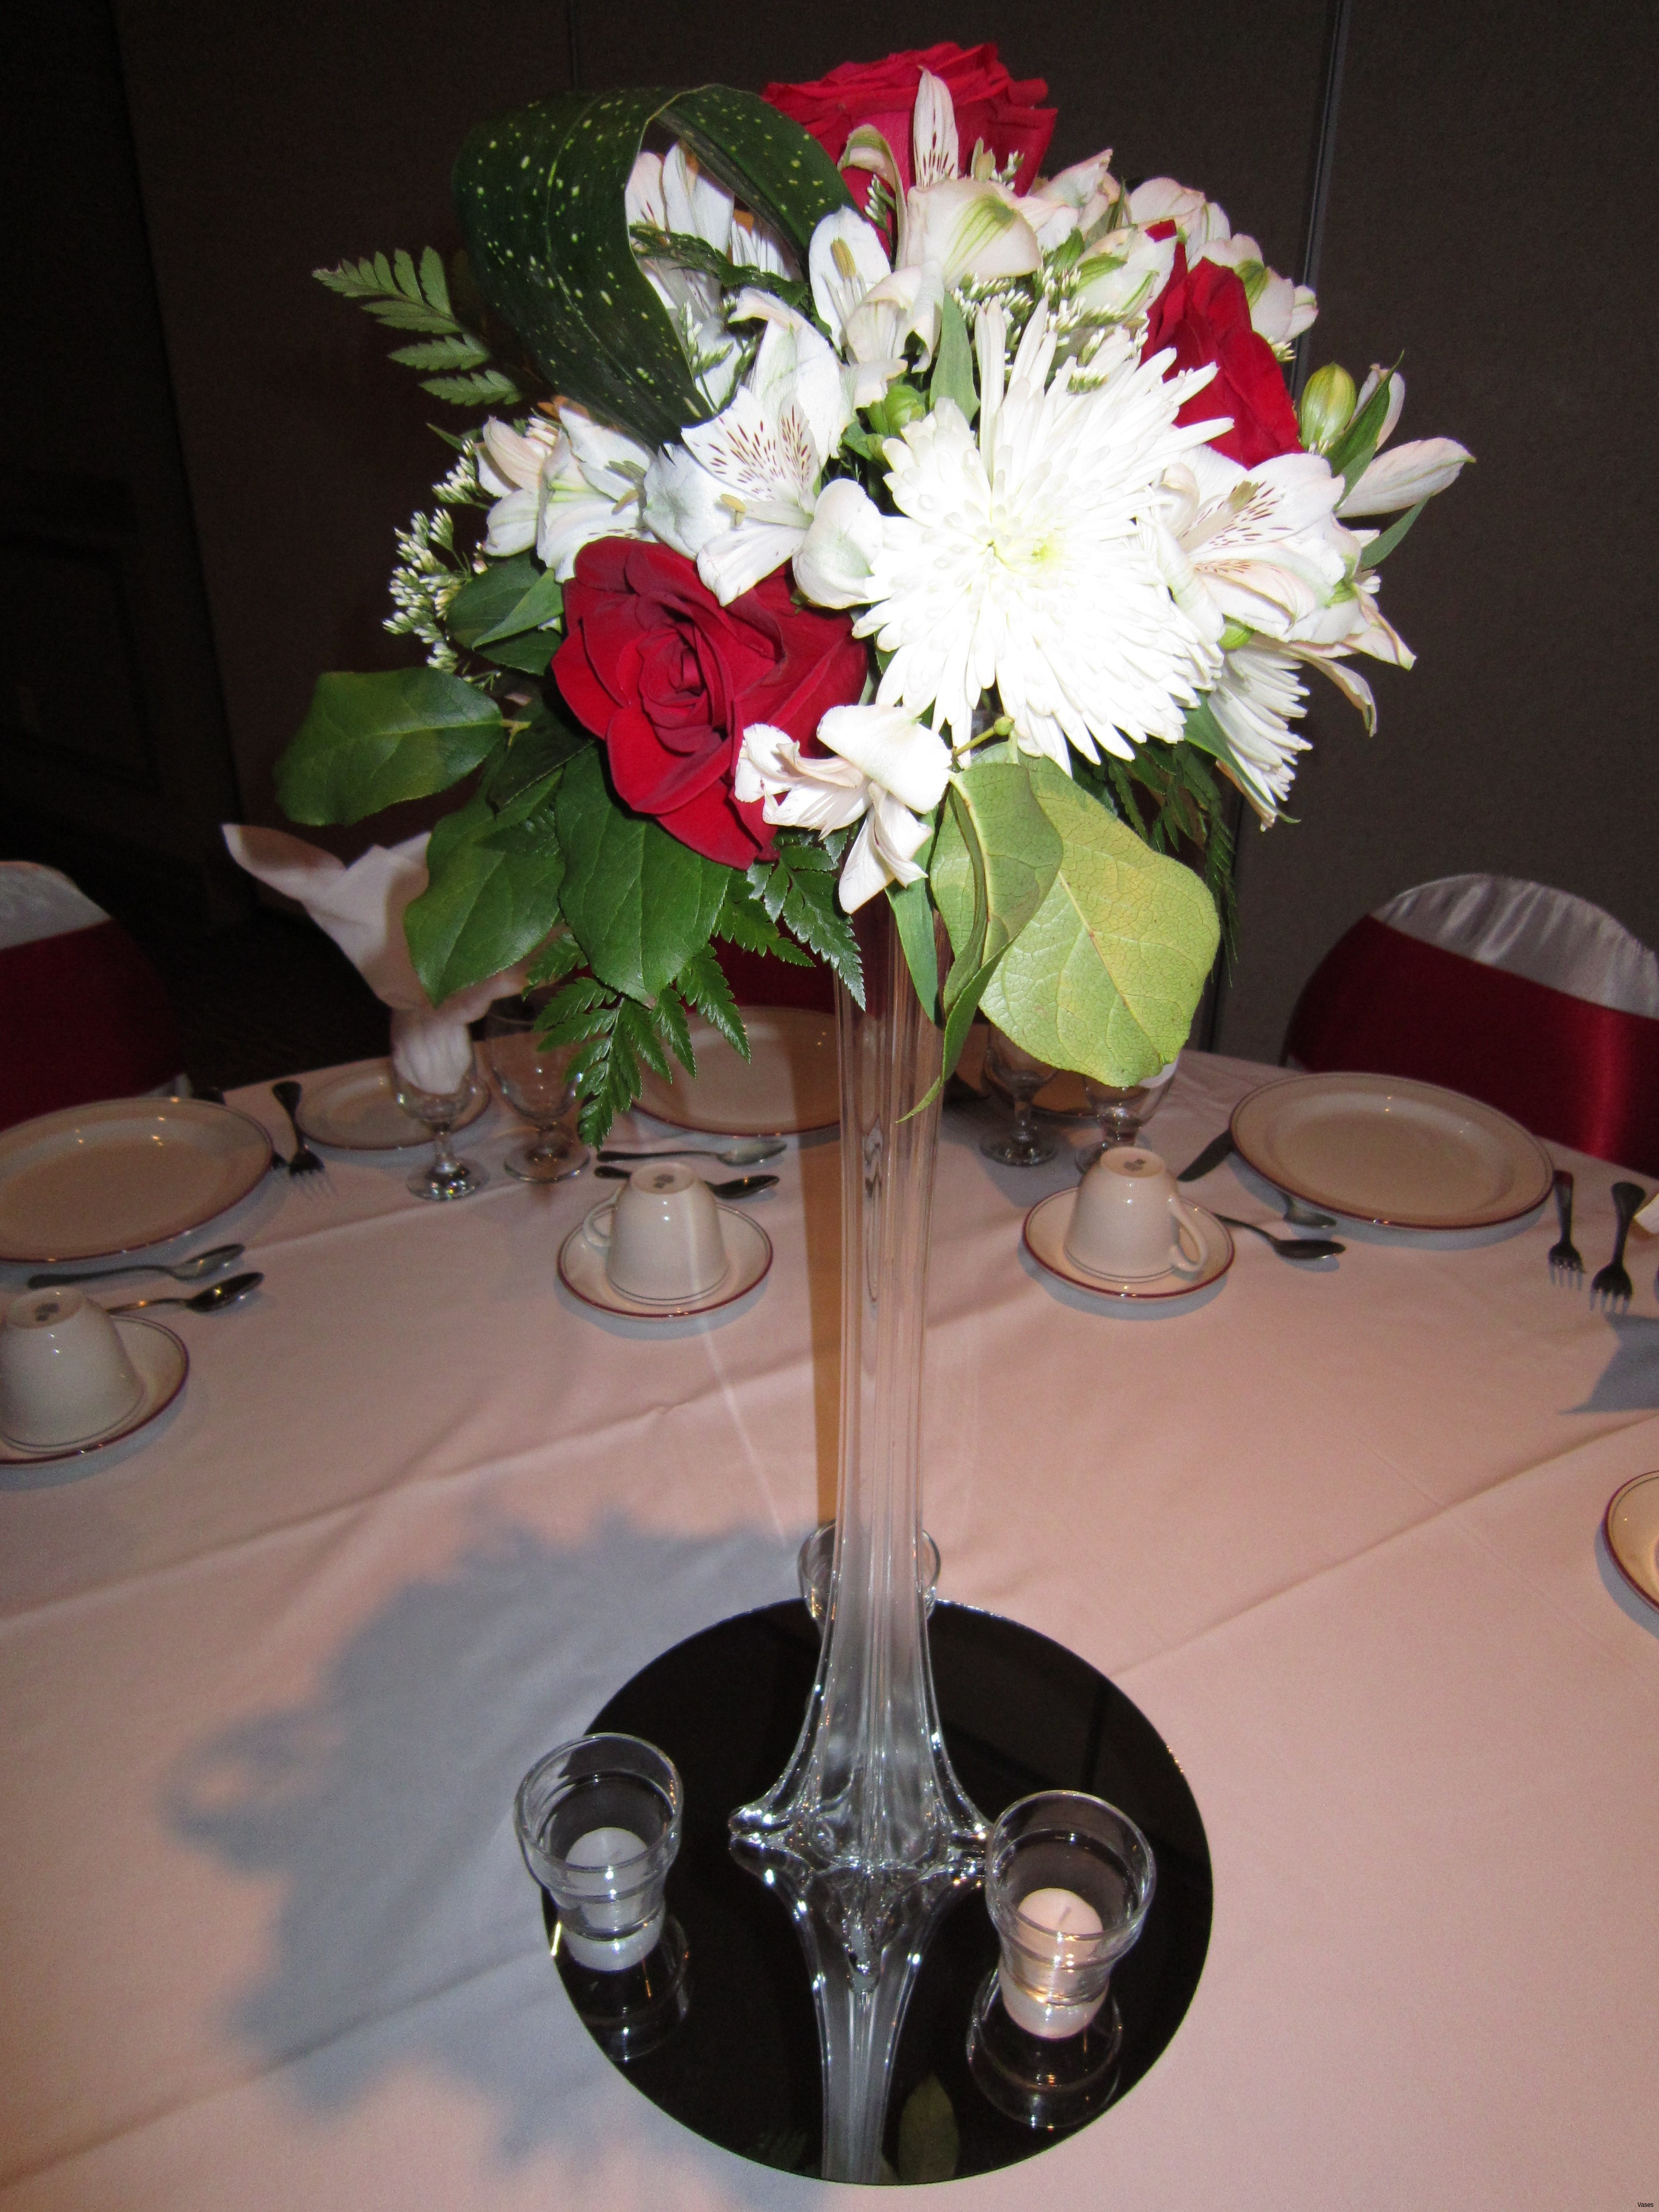 Vase Decoration Ideas Table Centerpieces Of Eiffel tower Vases Centerpiece Ideas Images Vases Eiffel tower Vase Pertaining to Eiffel tower Vases Centerpiece Ideas Pictures Eiffel tower Table Centerpieces Decorations Inspiring for Luxury Of Eiffel